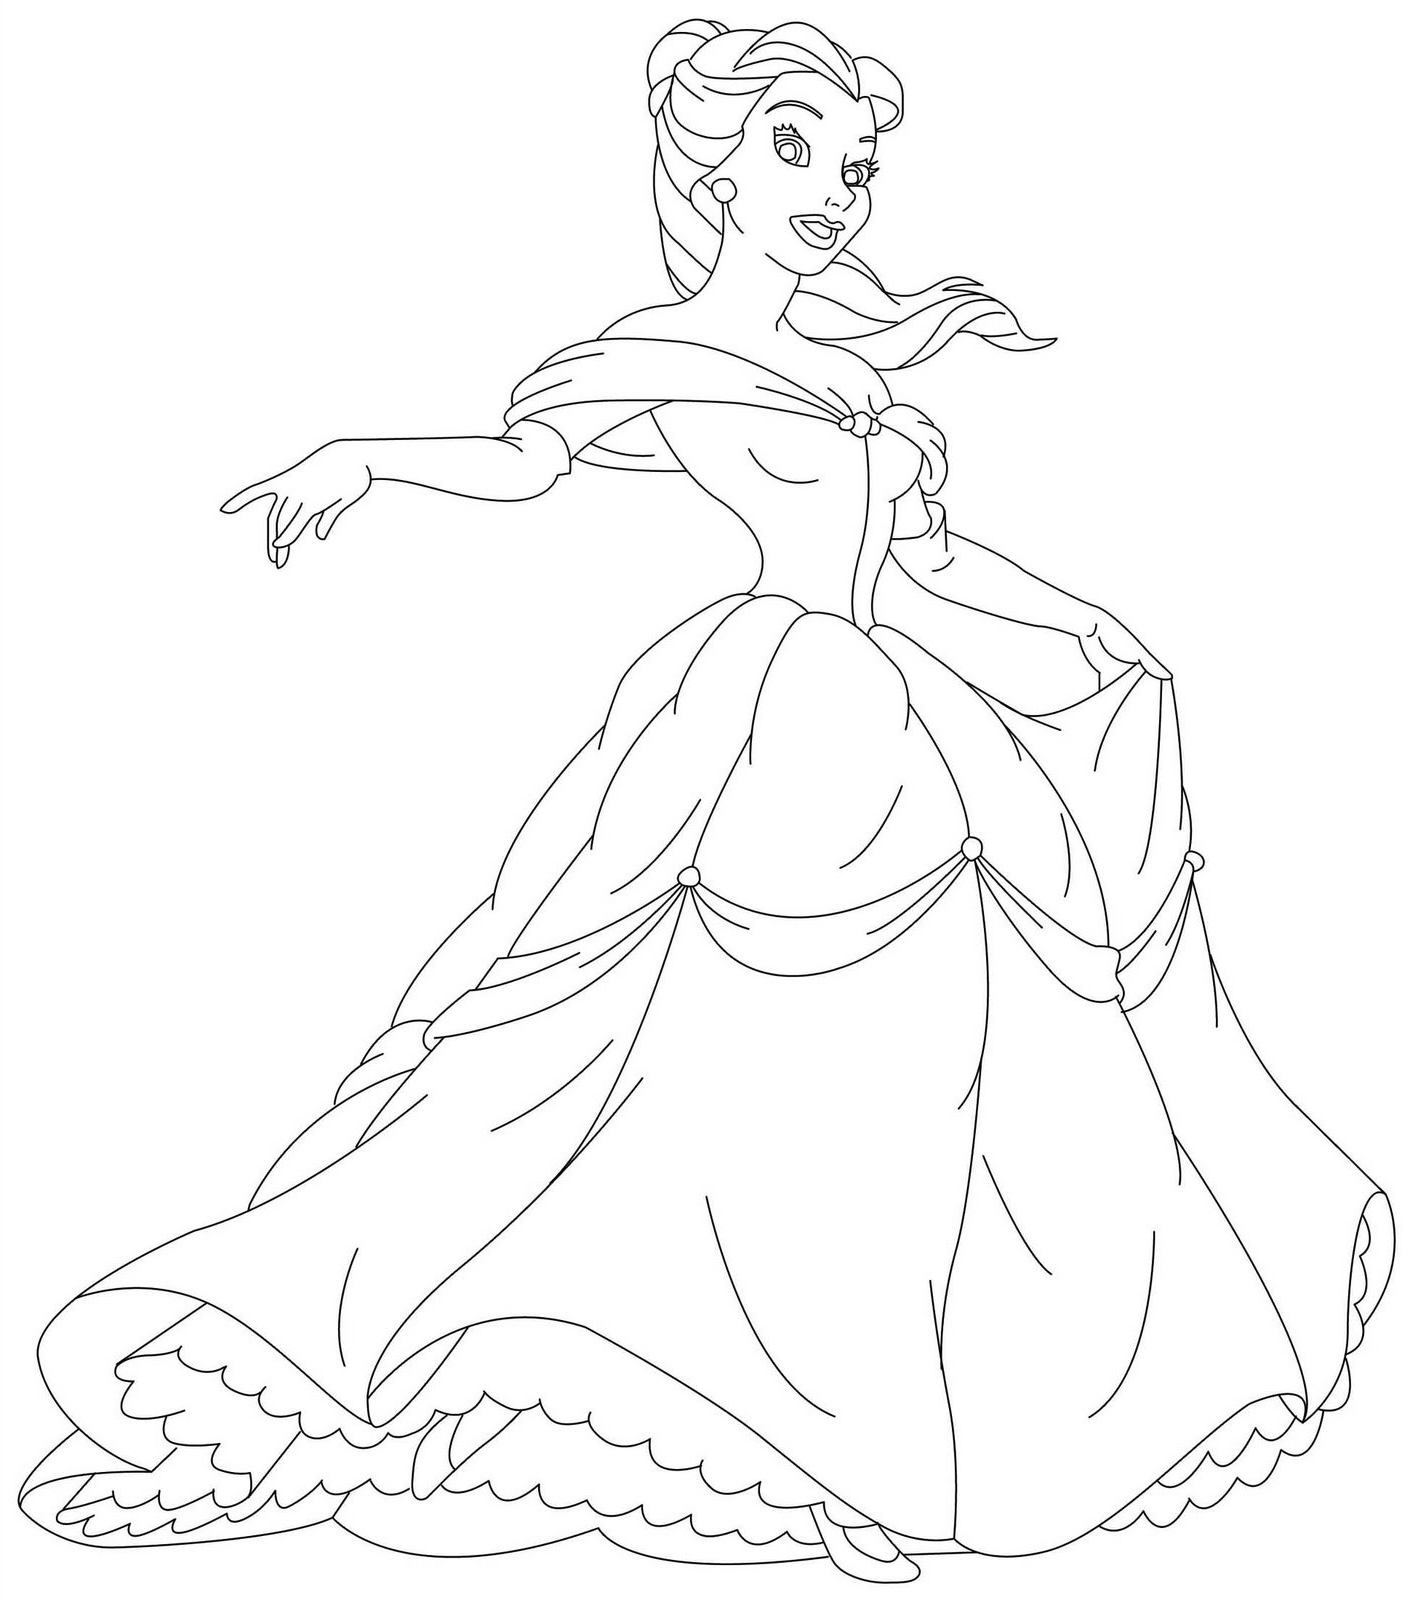 princess coloring pages online - photo#2